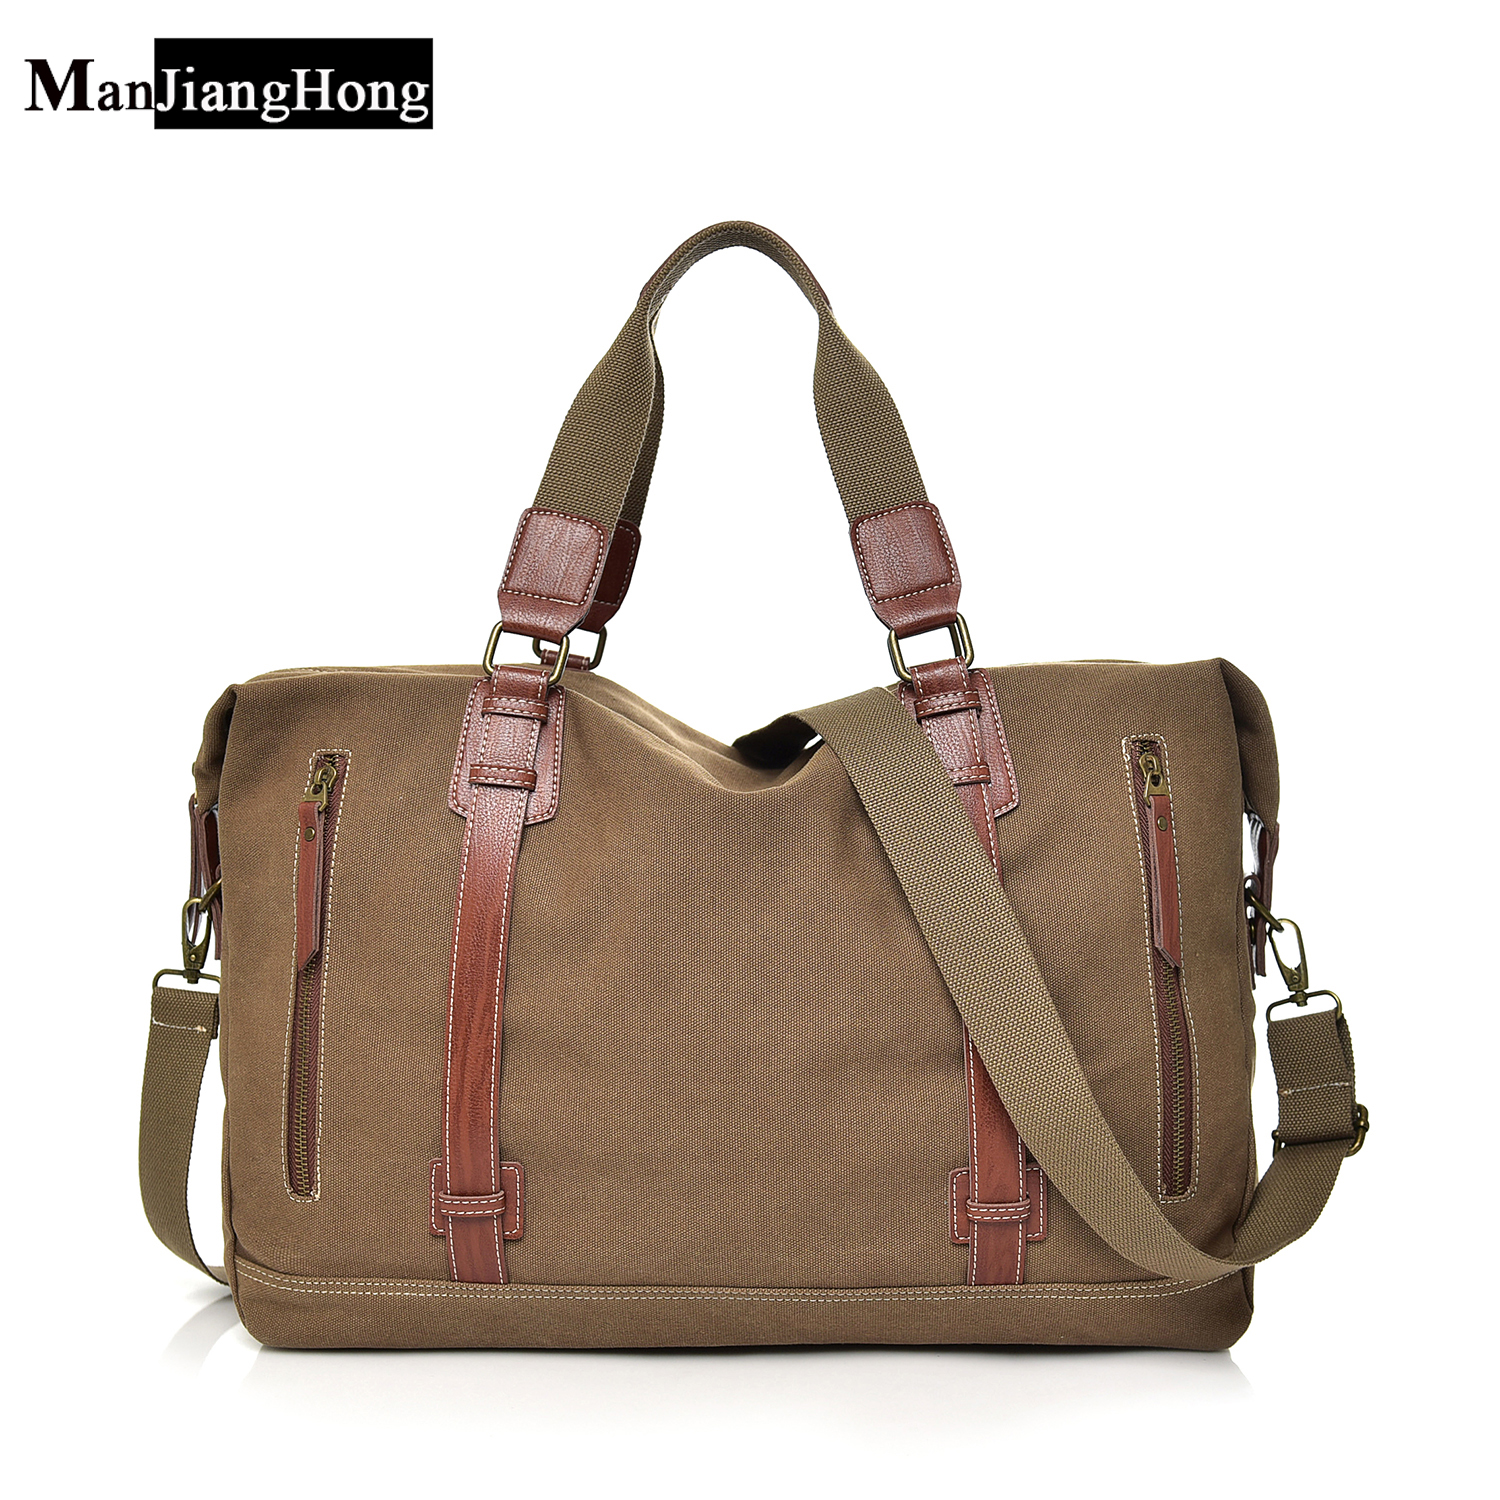 2018 New Vintage Men Canvas handbag High Quality Travel Bags Large Capacity Women Luggage Travel Duffle Bags Folding Bag bolsas 2017 new fashion brand vintage backpack large capacity men male luggage bag canvas travel bags top quality travel duffle bag man